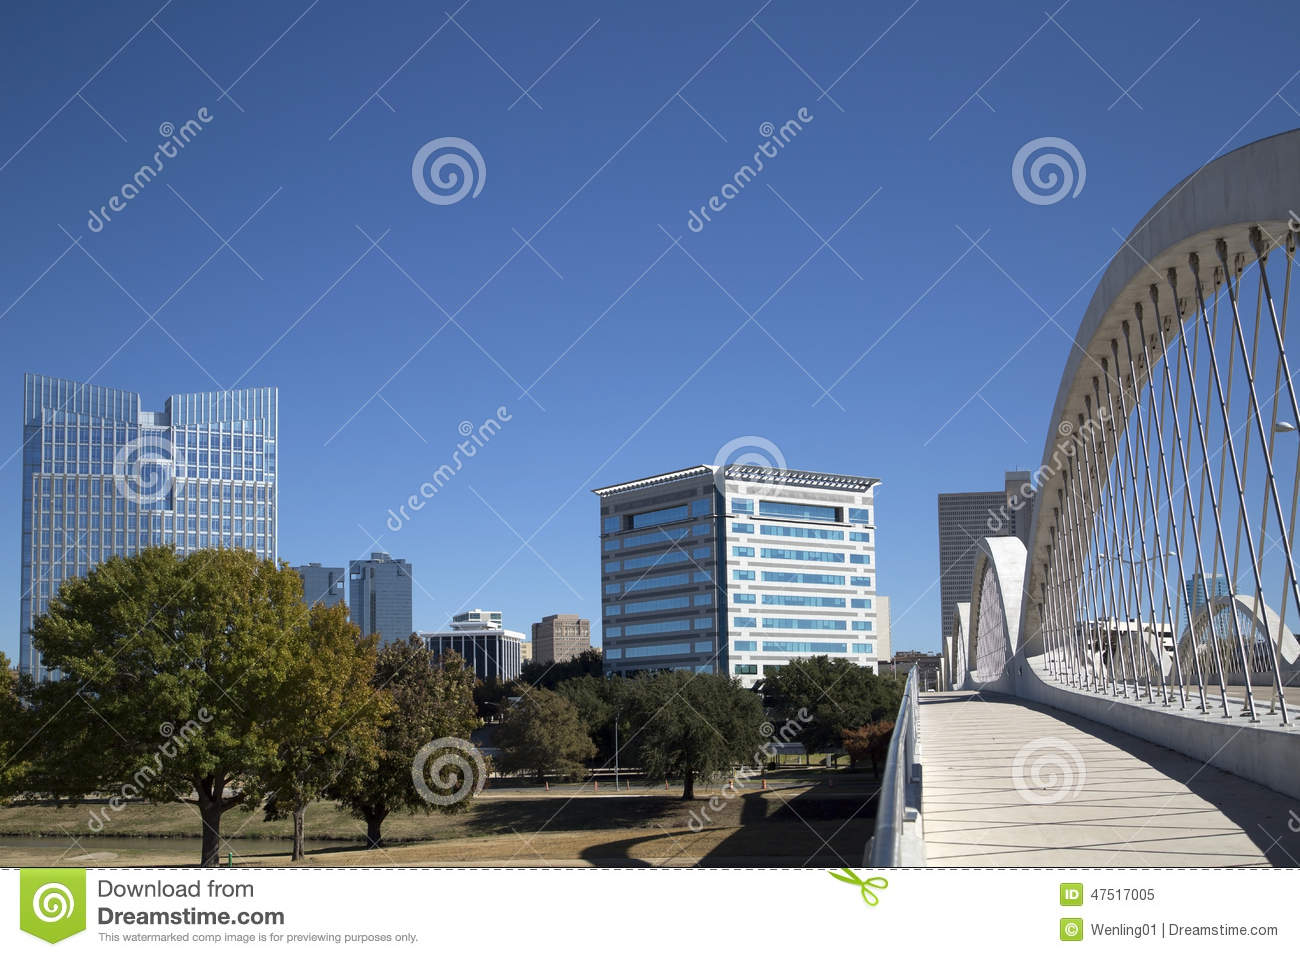 City Fort Worth TX